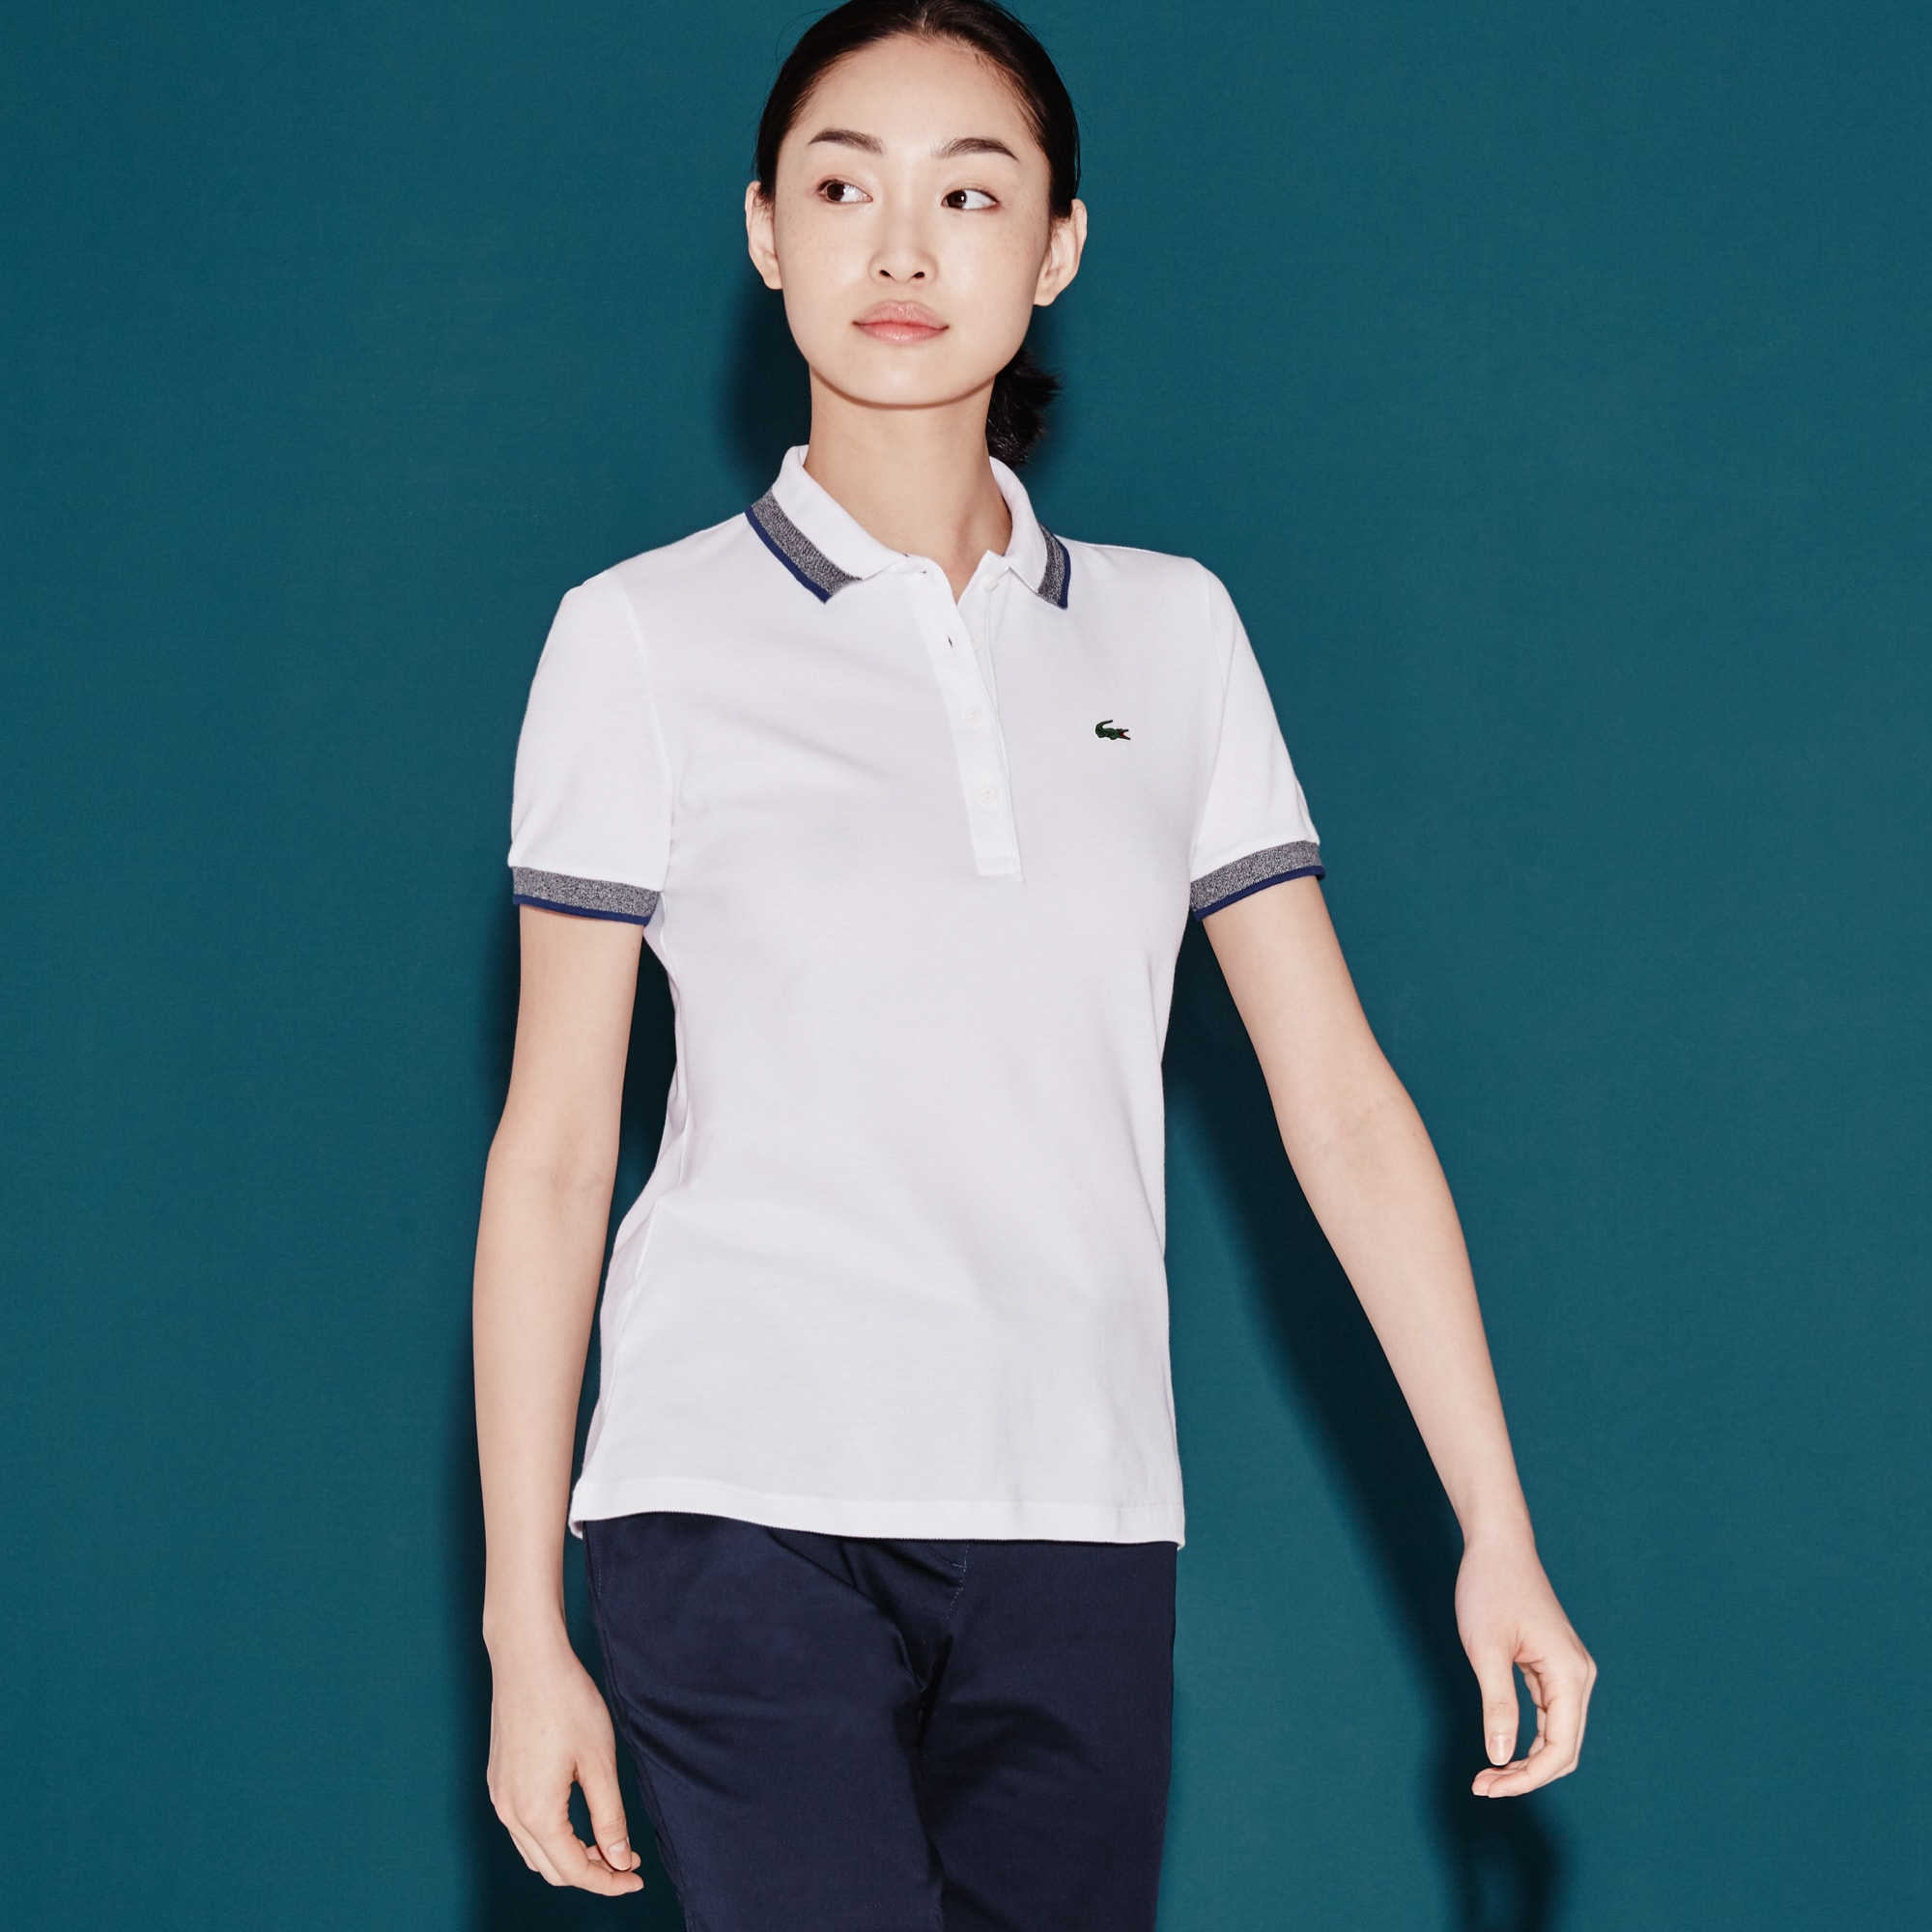 Polo shirts for women lacoste women 39 s polo shirts lacoste for Woman s polo shirts